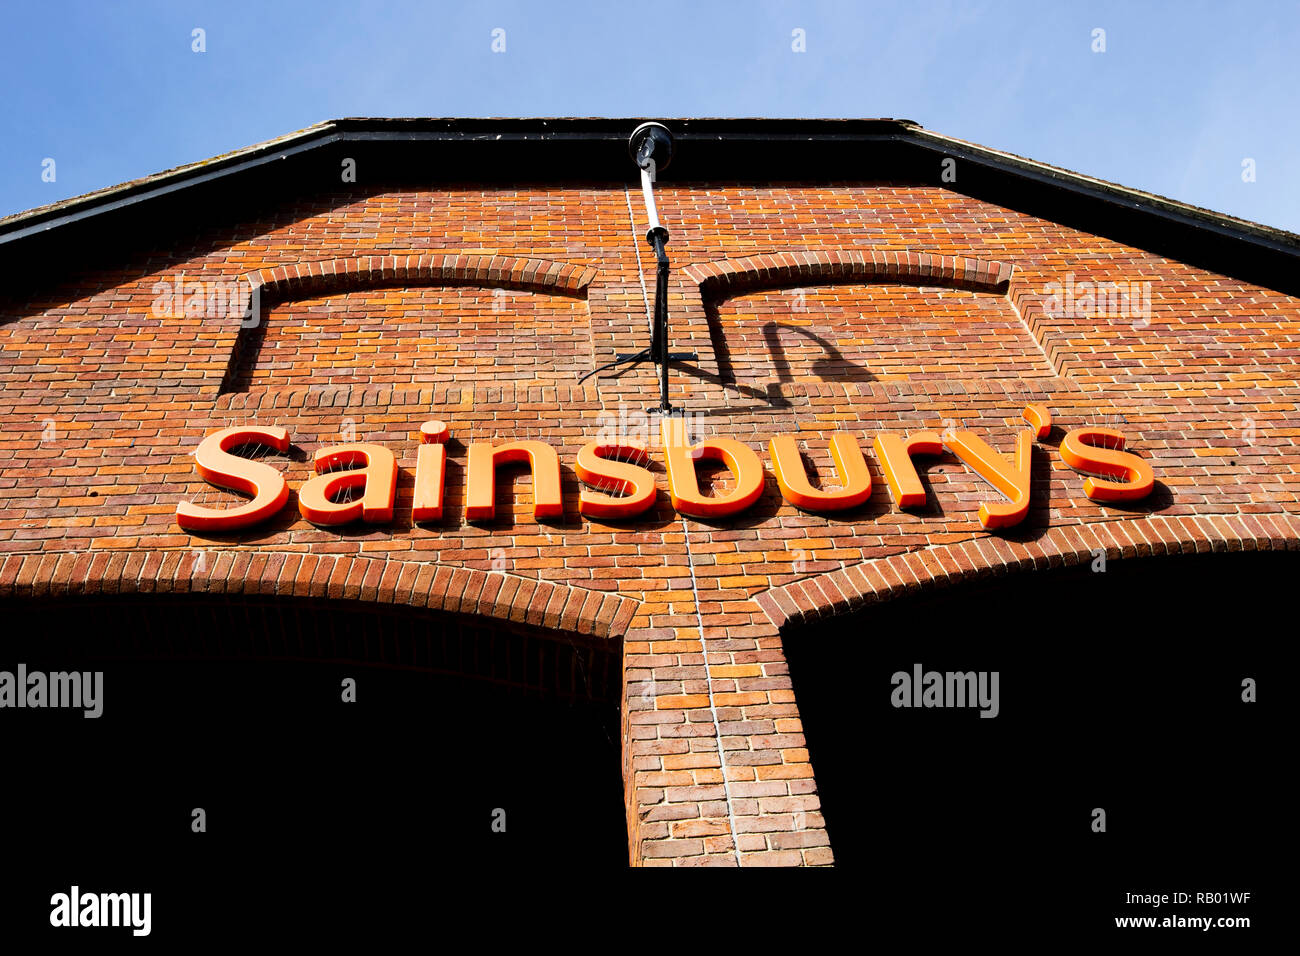 Sainsburys supermarket sign over entrance, founded in 1869 by John James Sainsbury with a shop in Drury Lane London - Stock Image